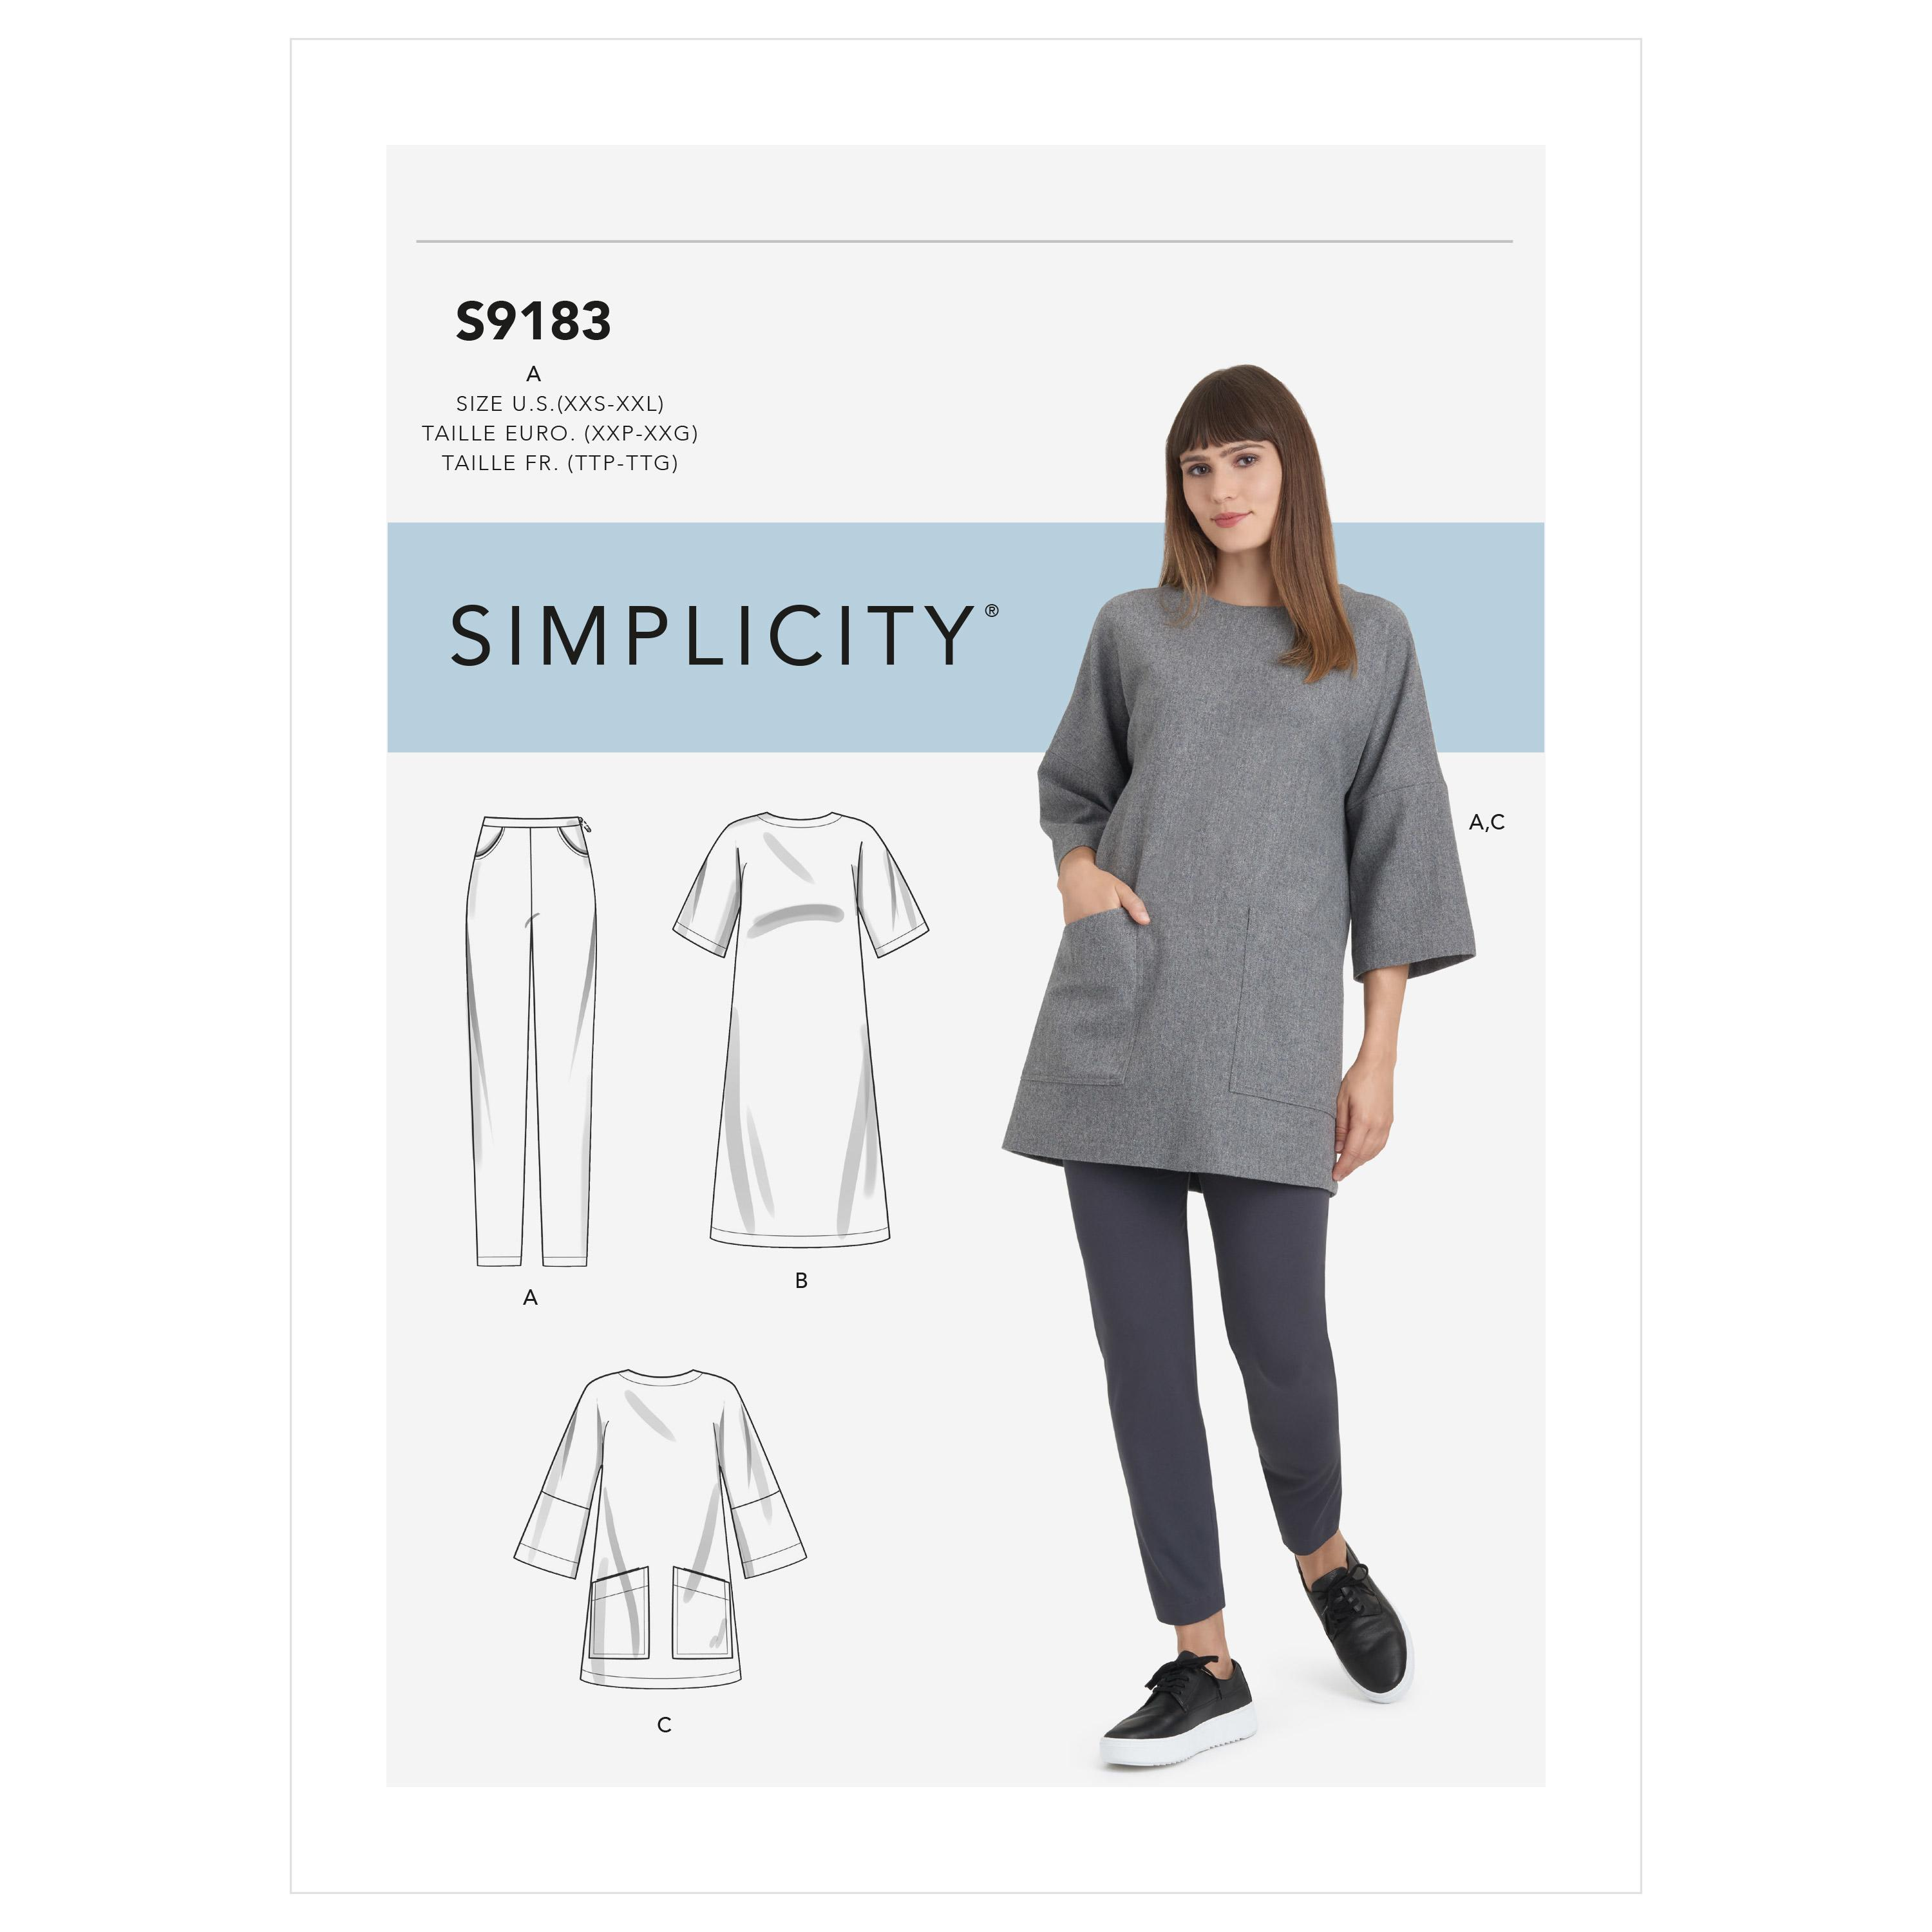 Simplicity S9183 Misses' Tunic, Top, Dress & Legging